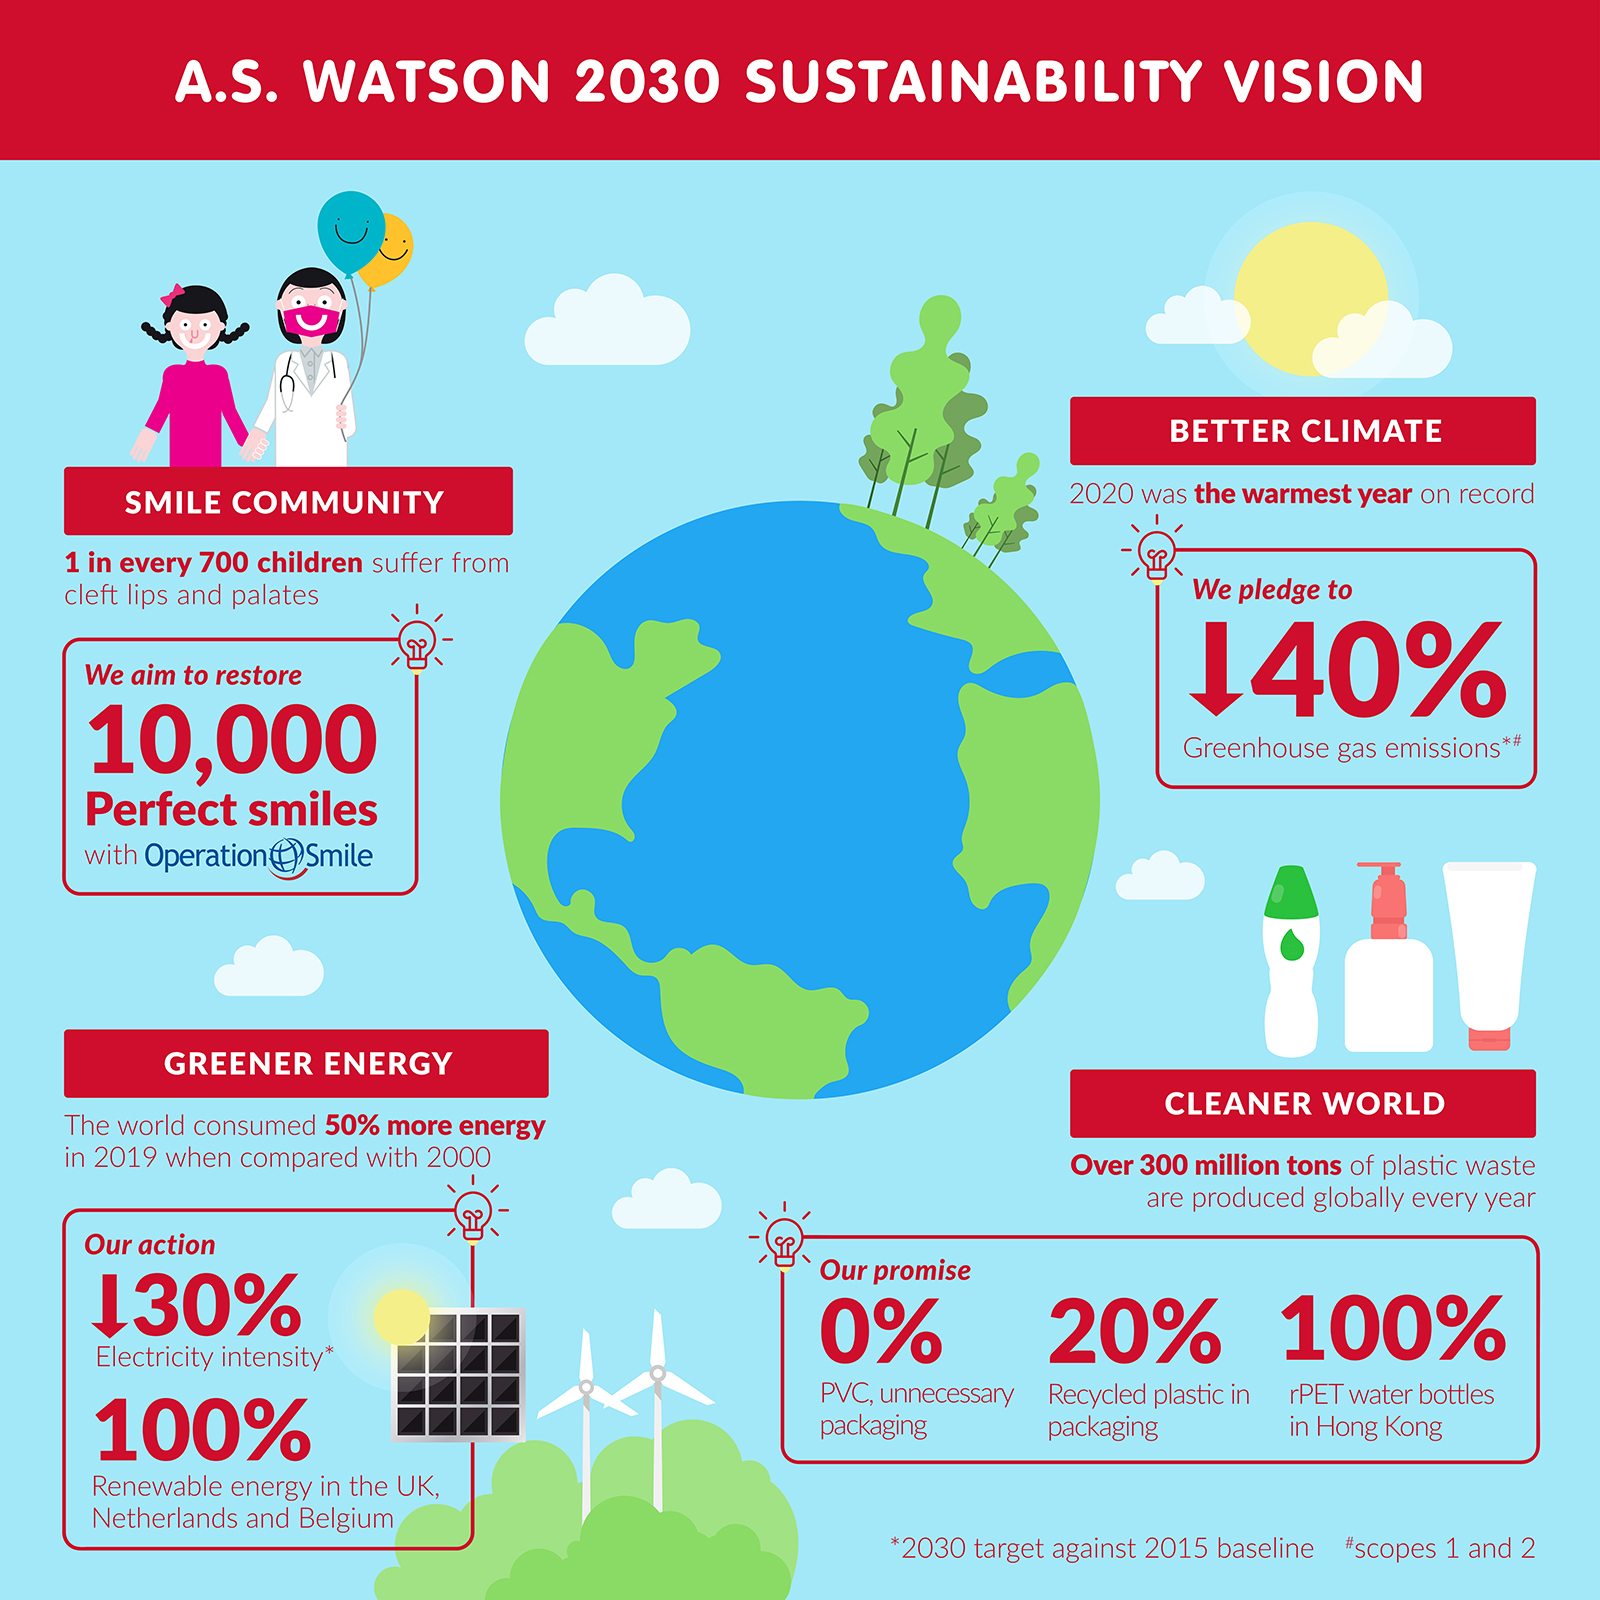 A.S. Watson Group Announces its Social Purpose and 2030 Sustainability Vision